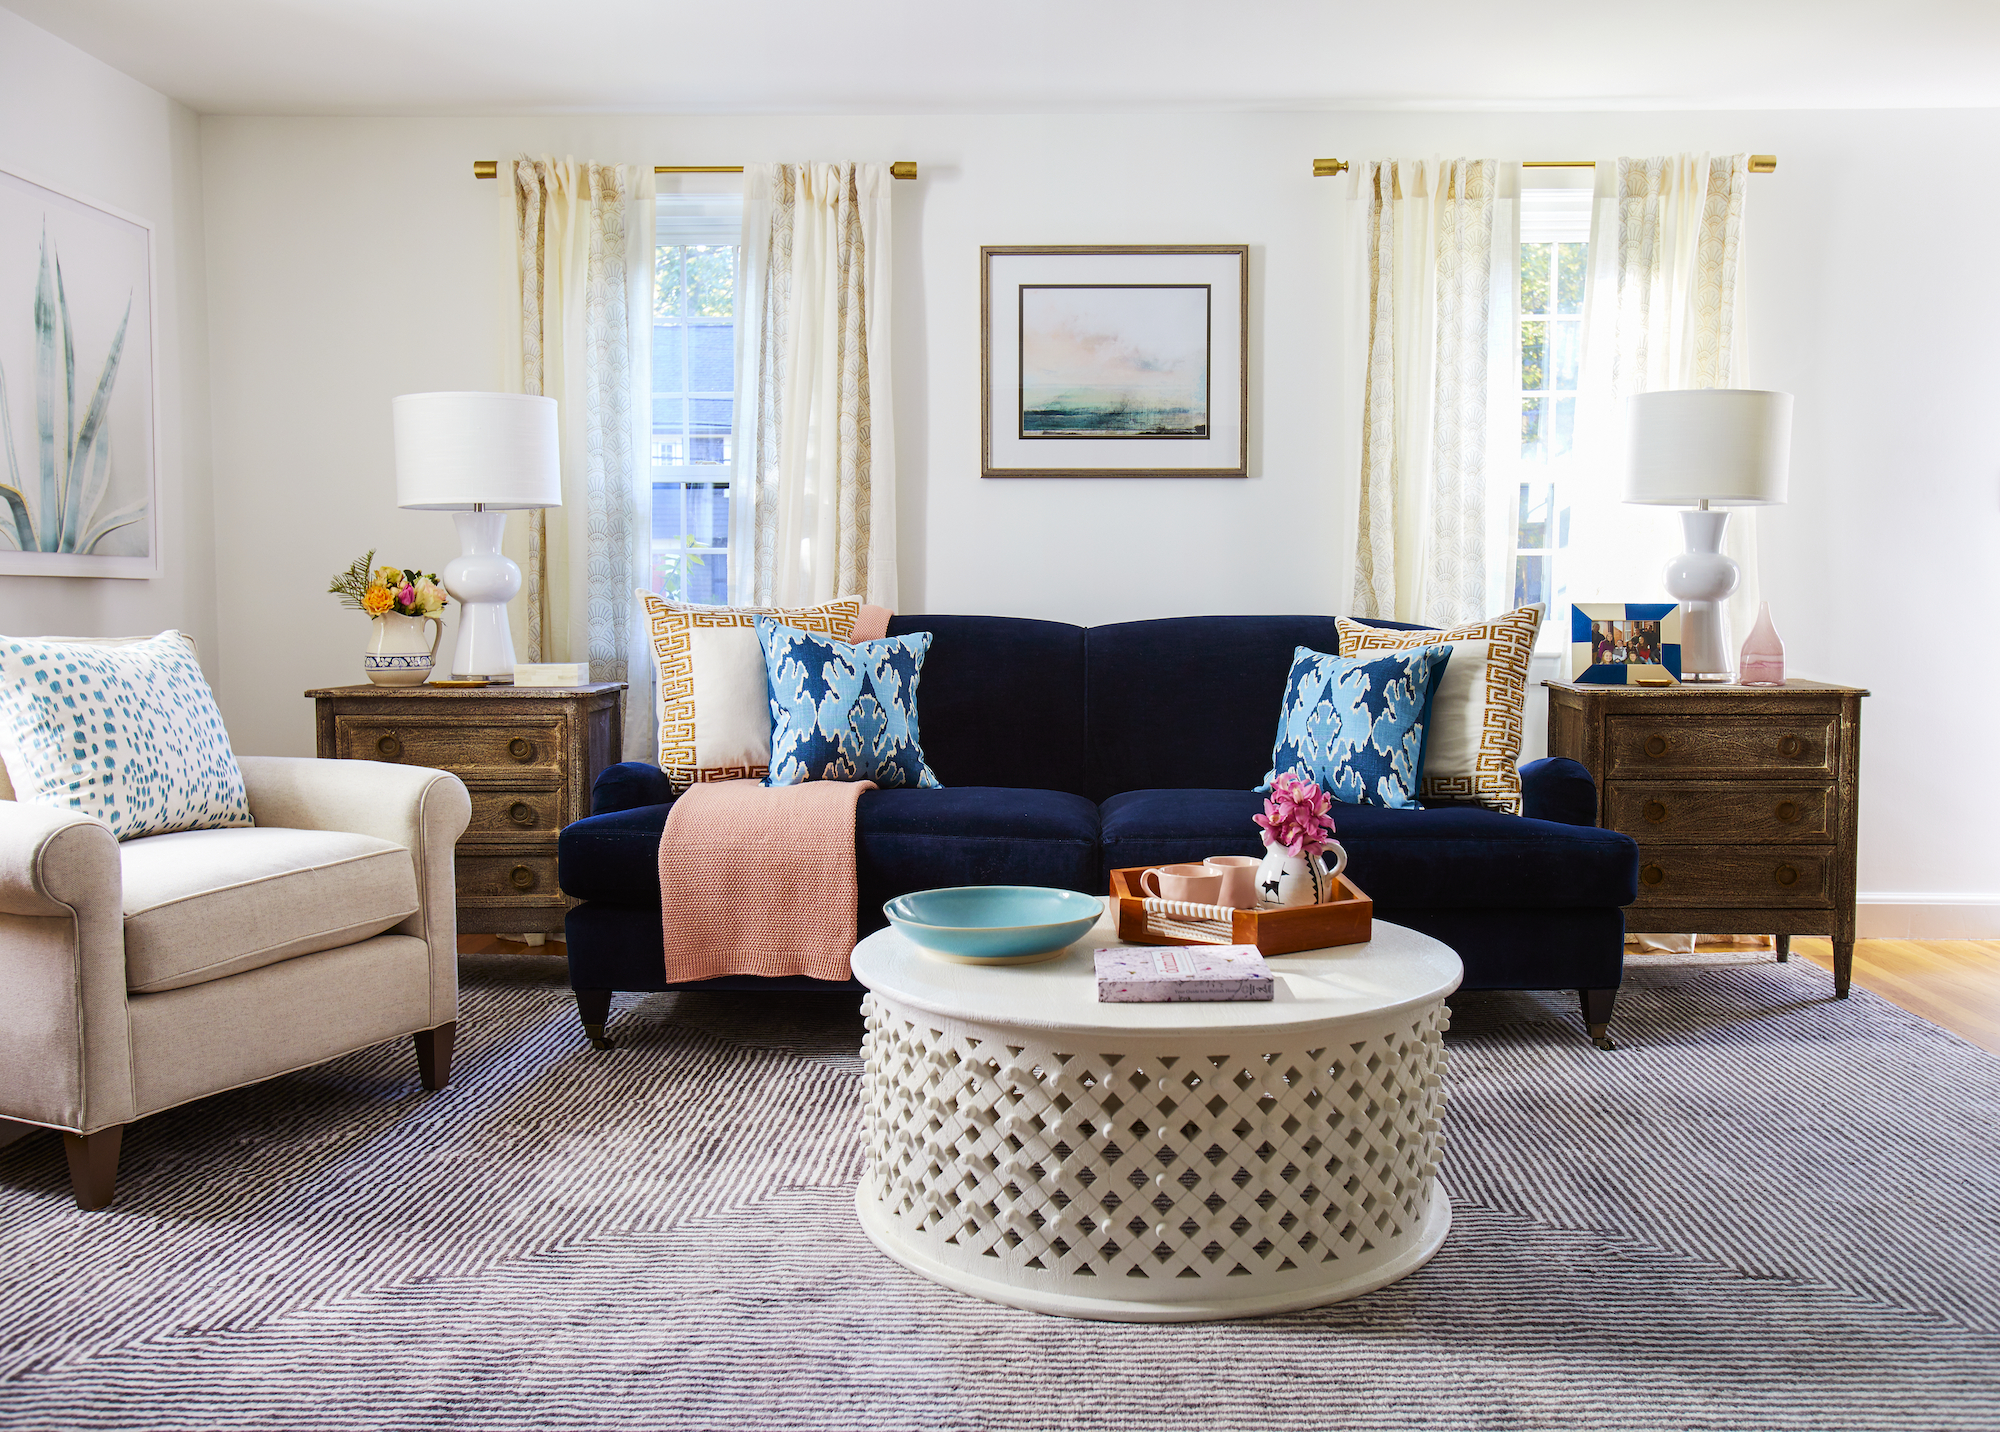 Simphome.com best living room ideas stylish living room decorating with 10 some of the coolest ideas how to upgrade living room set ups for small rooms